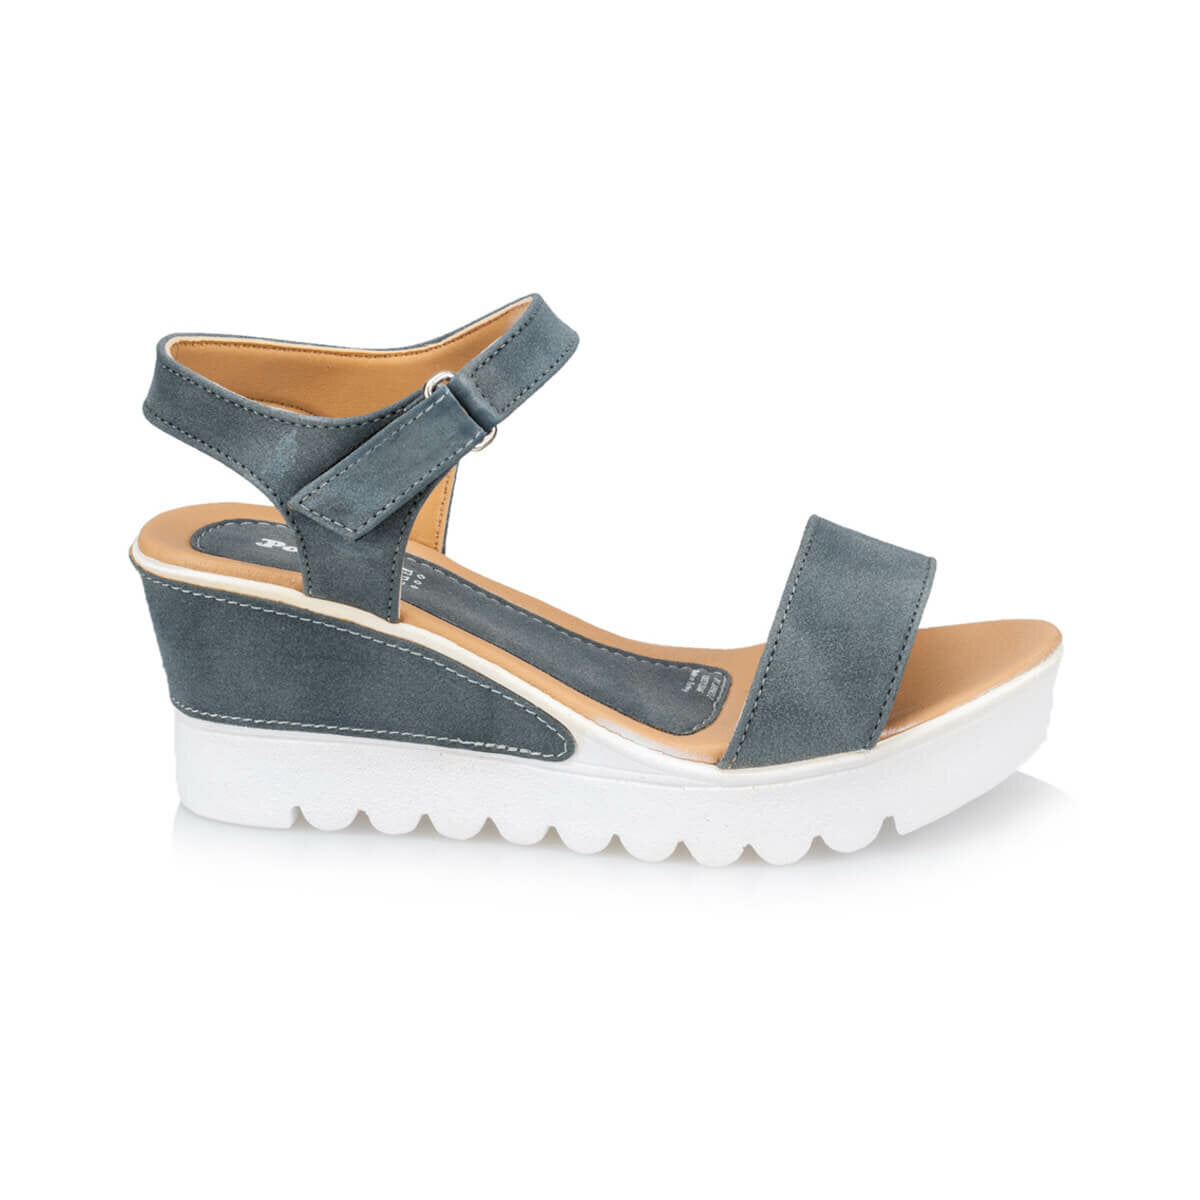 Fashion Wedge Sandals for Women - asheers4u